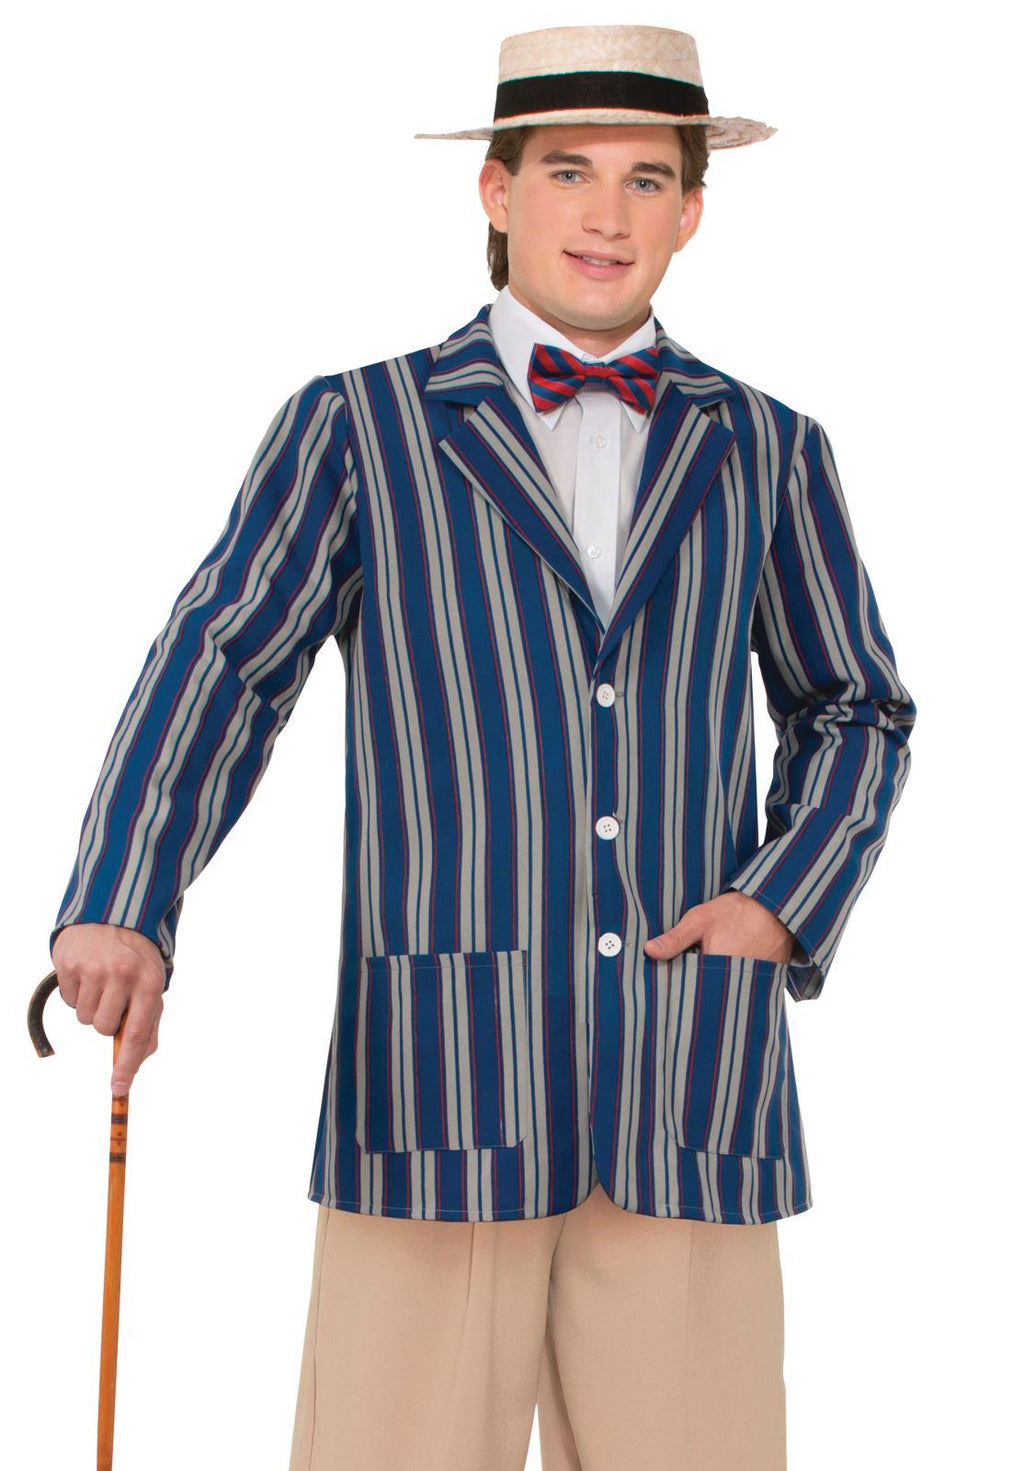 Boater Jacket Men's Costume